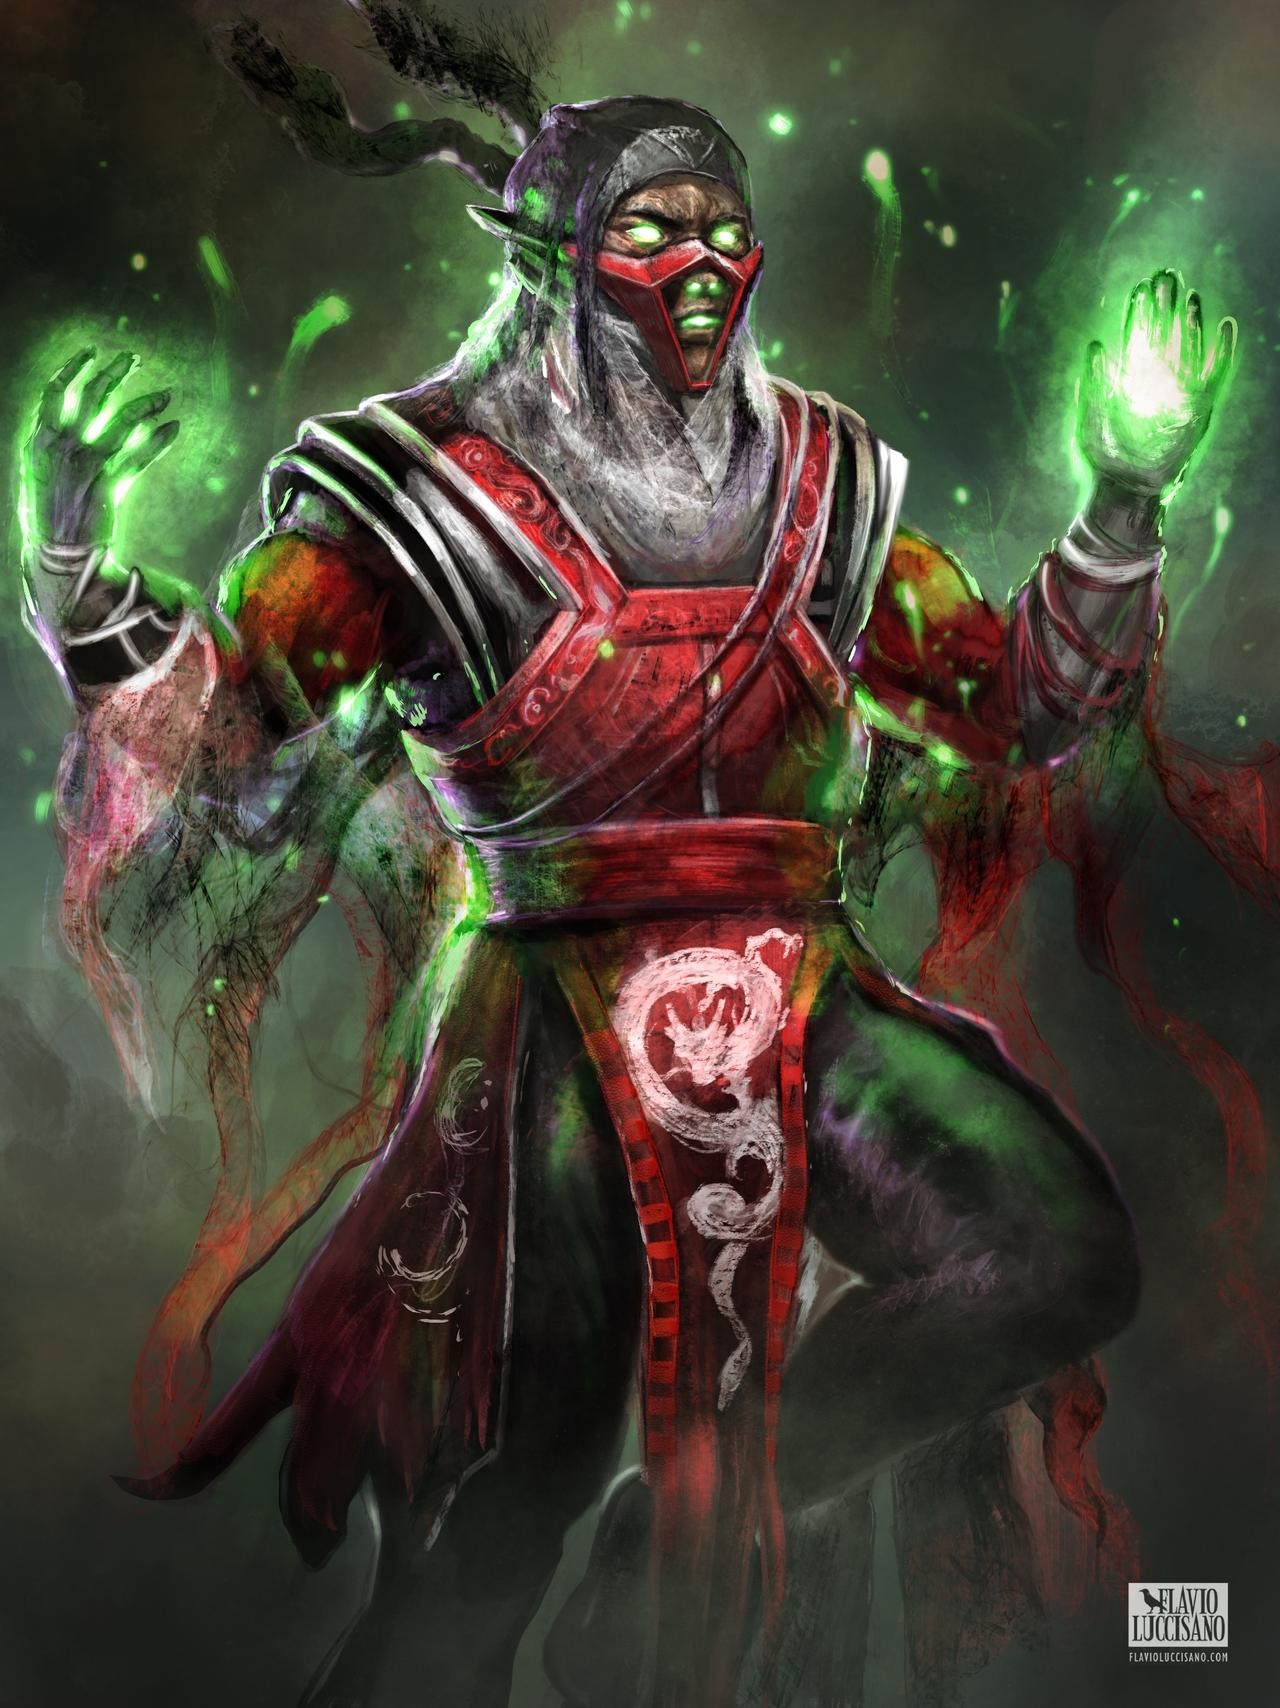 ermac_by_flavioluccisano_ddhieis-fullvie